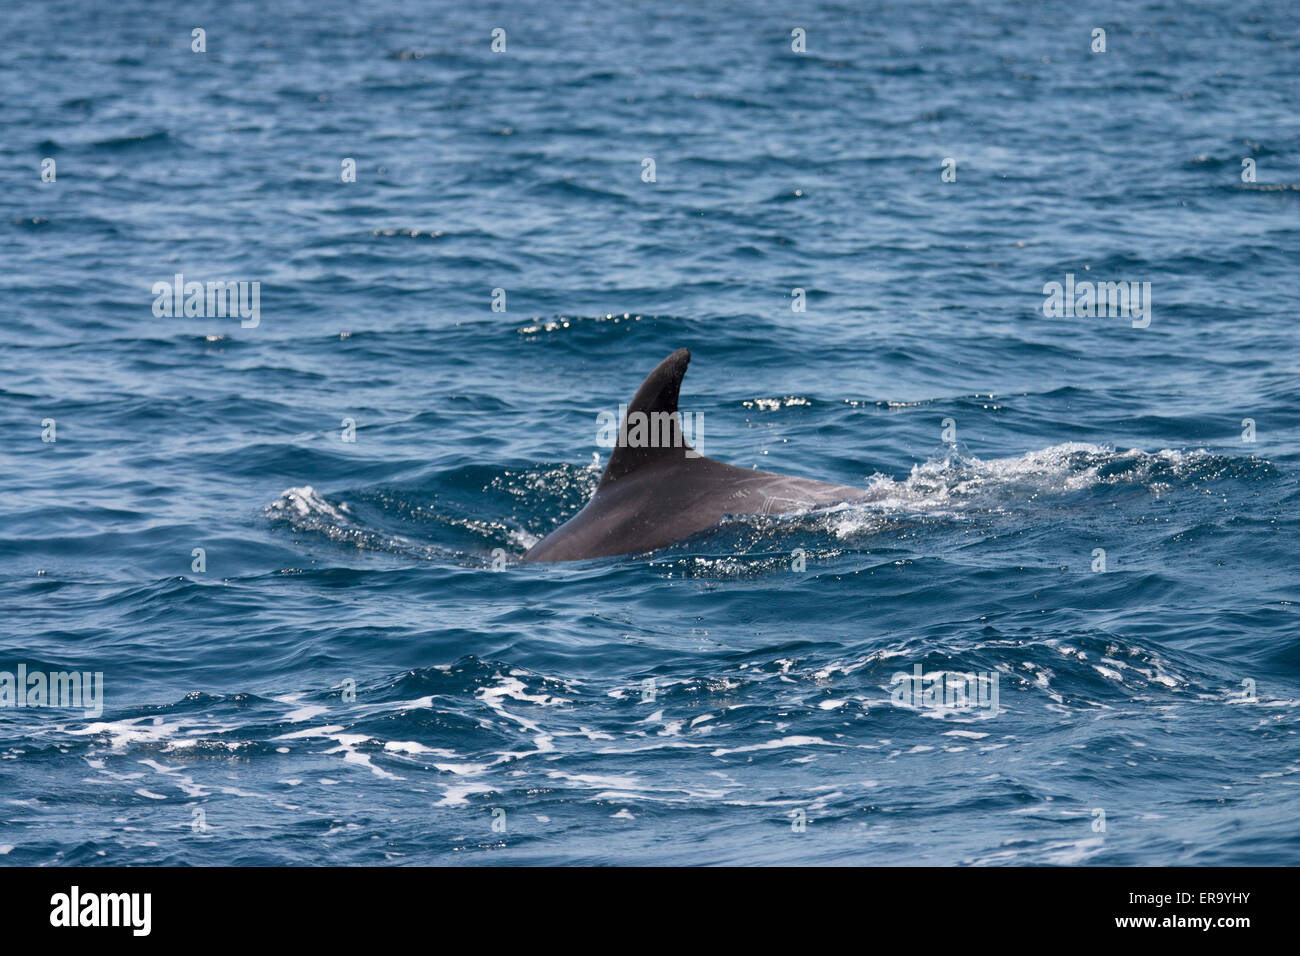 Dolphin In the sea of Oman - Stock Image